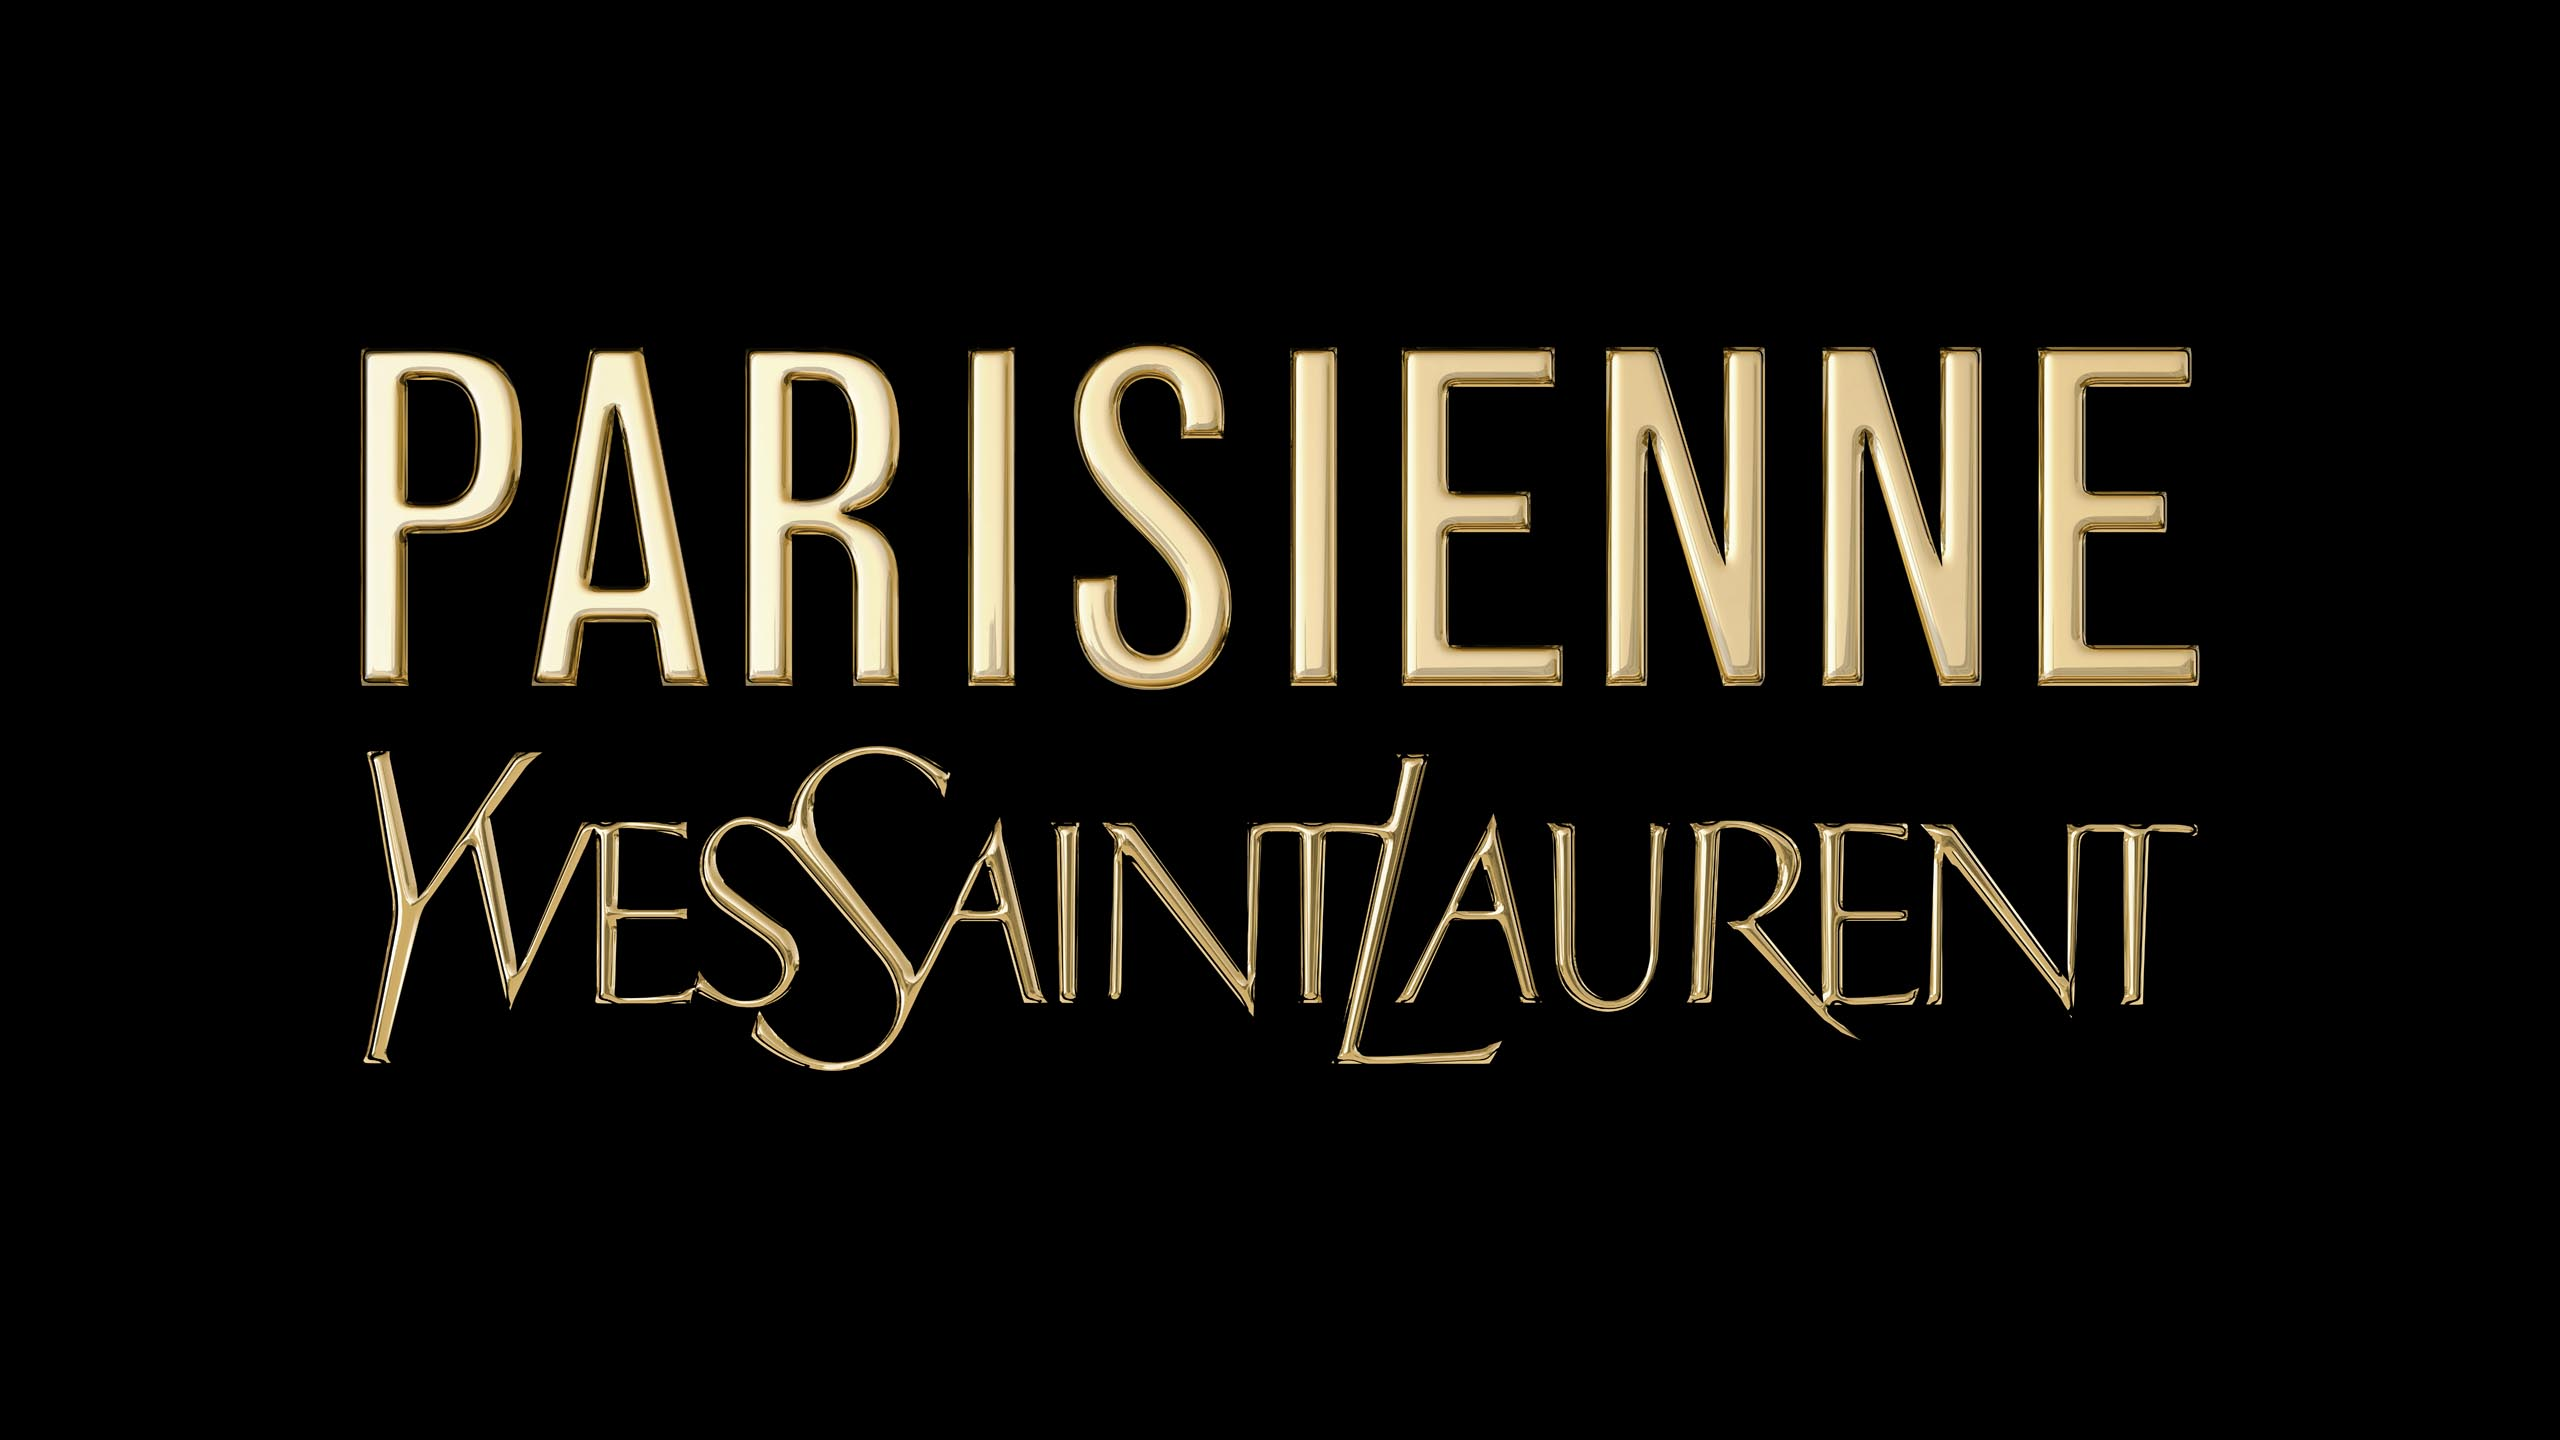 3D-logo for Yves Saint Laurent's Pariesienne